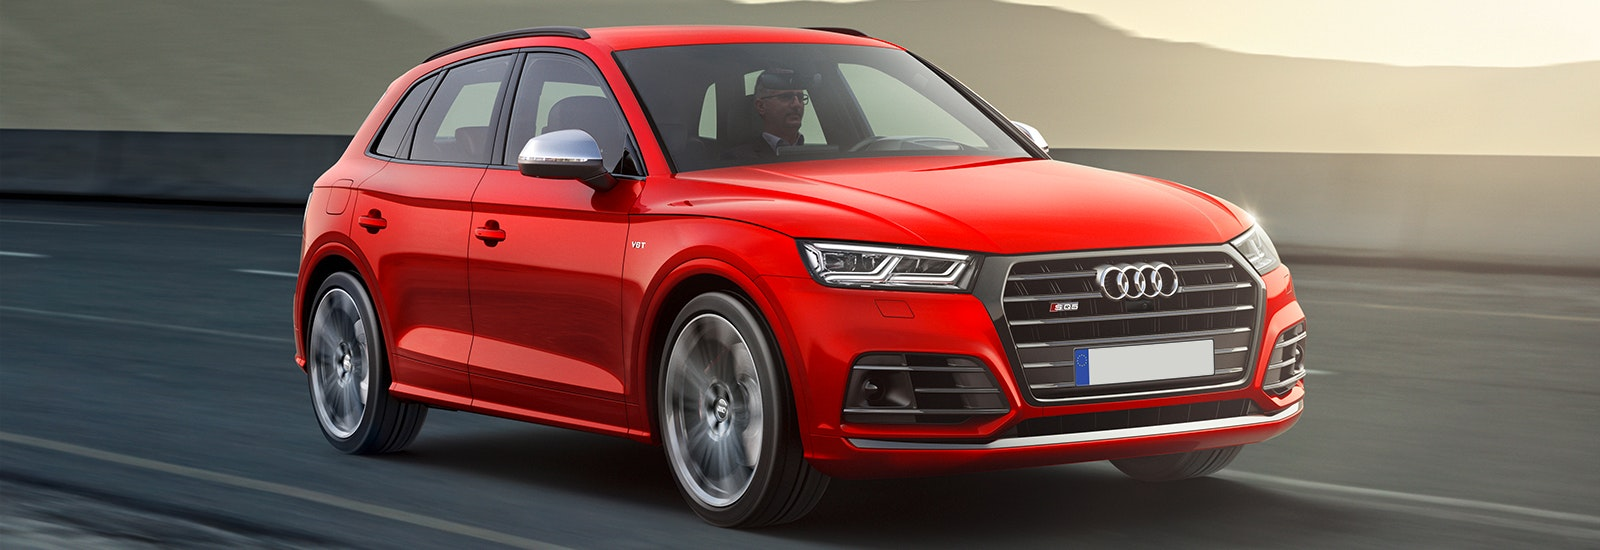 Audi Rsq5 Release Date >> 2018 Audi Rsq5 | Best new cars for 2018